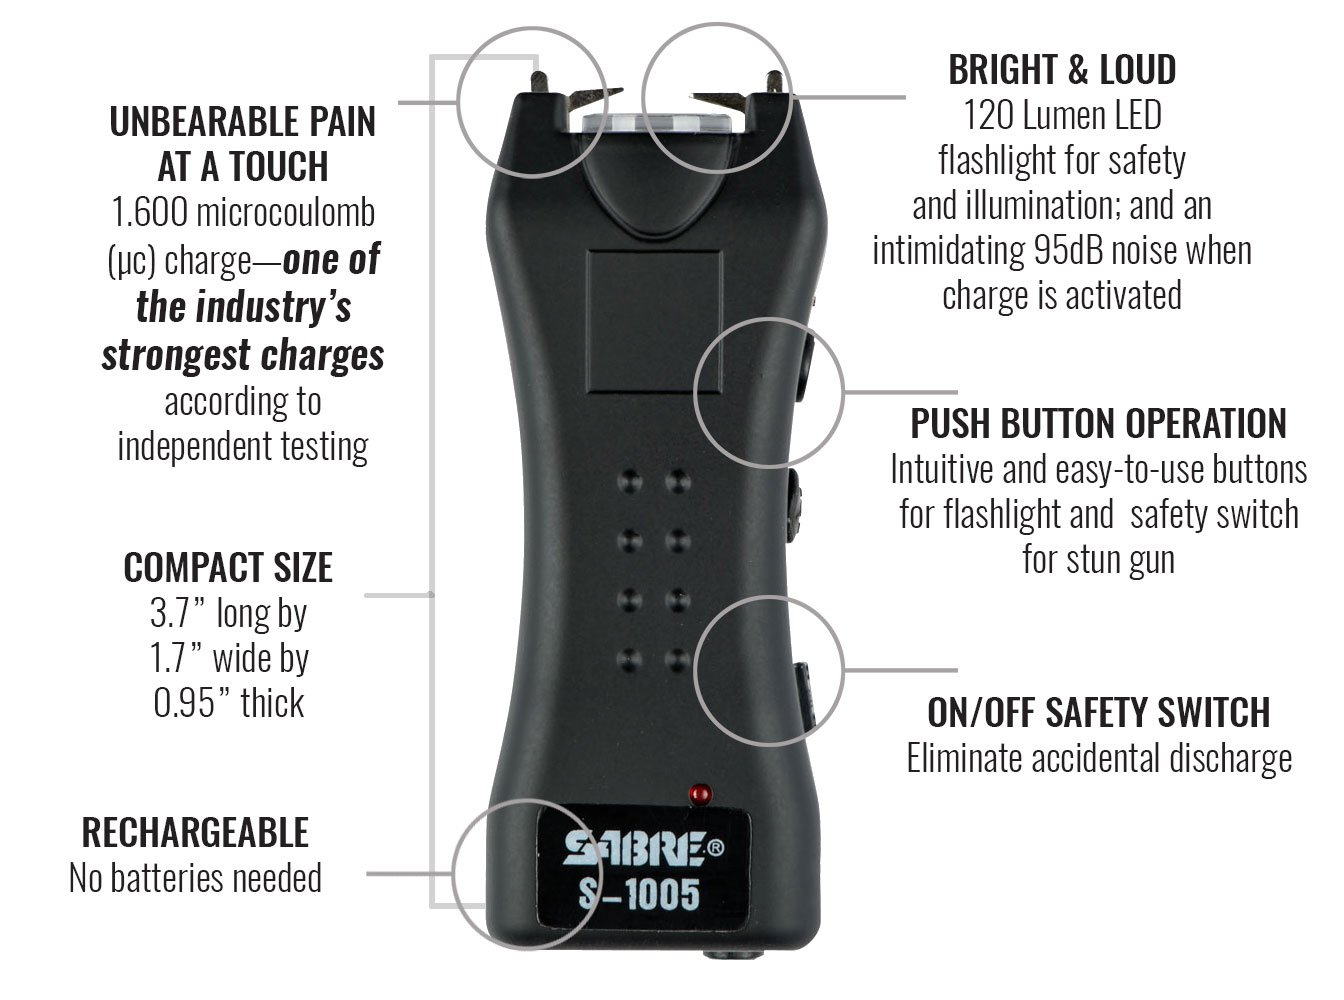 Sabre Dual Capacitor Stun Gun Led Flashlight Delivers Circuit Board Diagram As Well Circuits Schematics 16 Powerful Pain Inducing Microcoulombs 120 Lumens Sports Outdoors